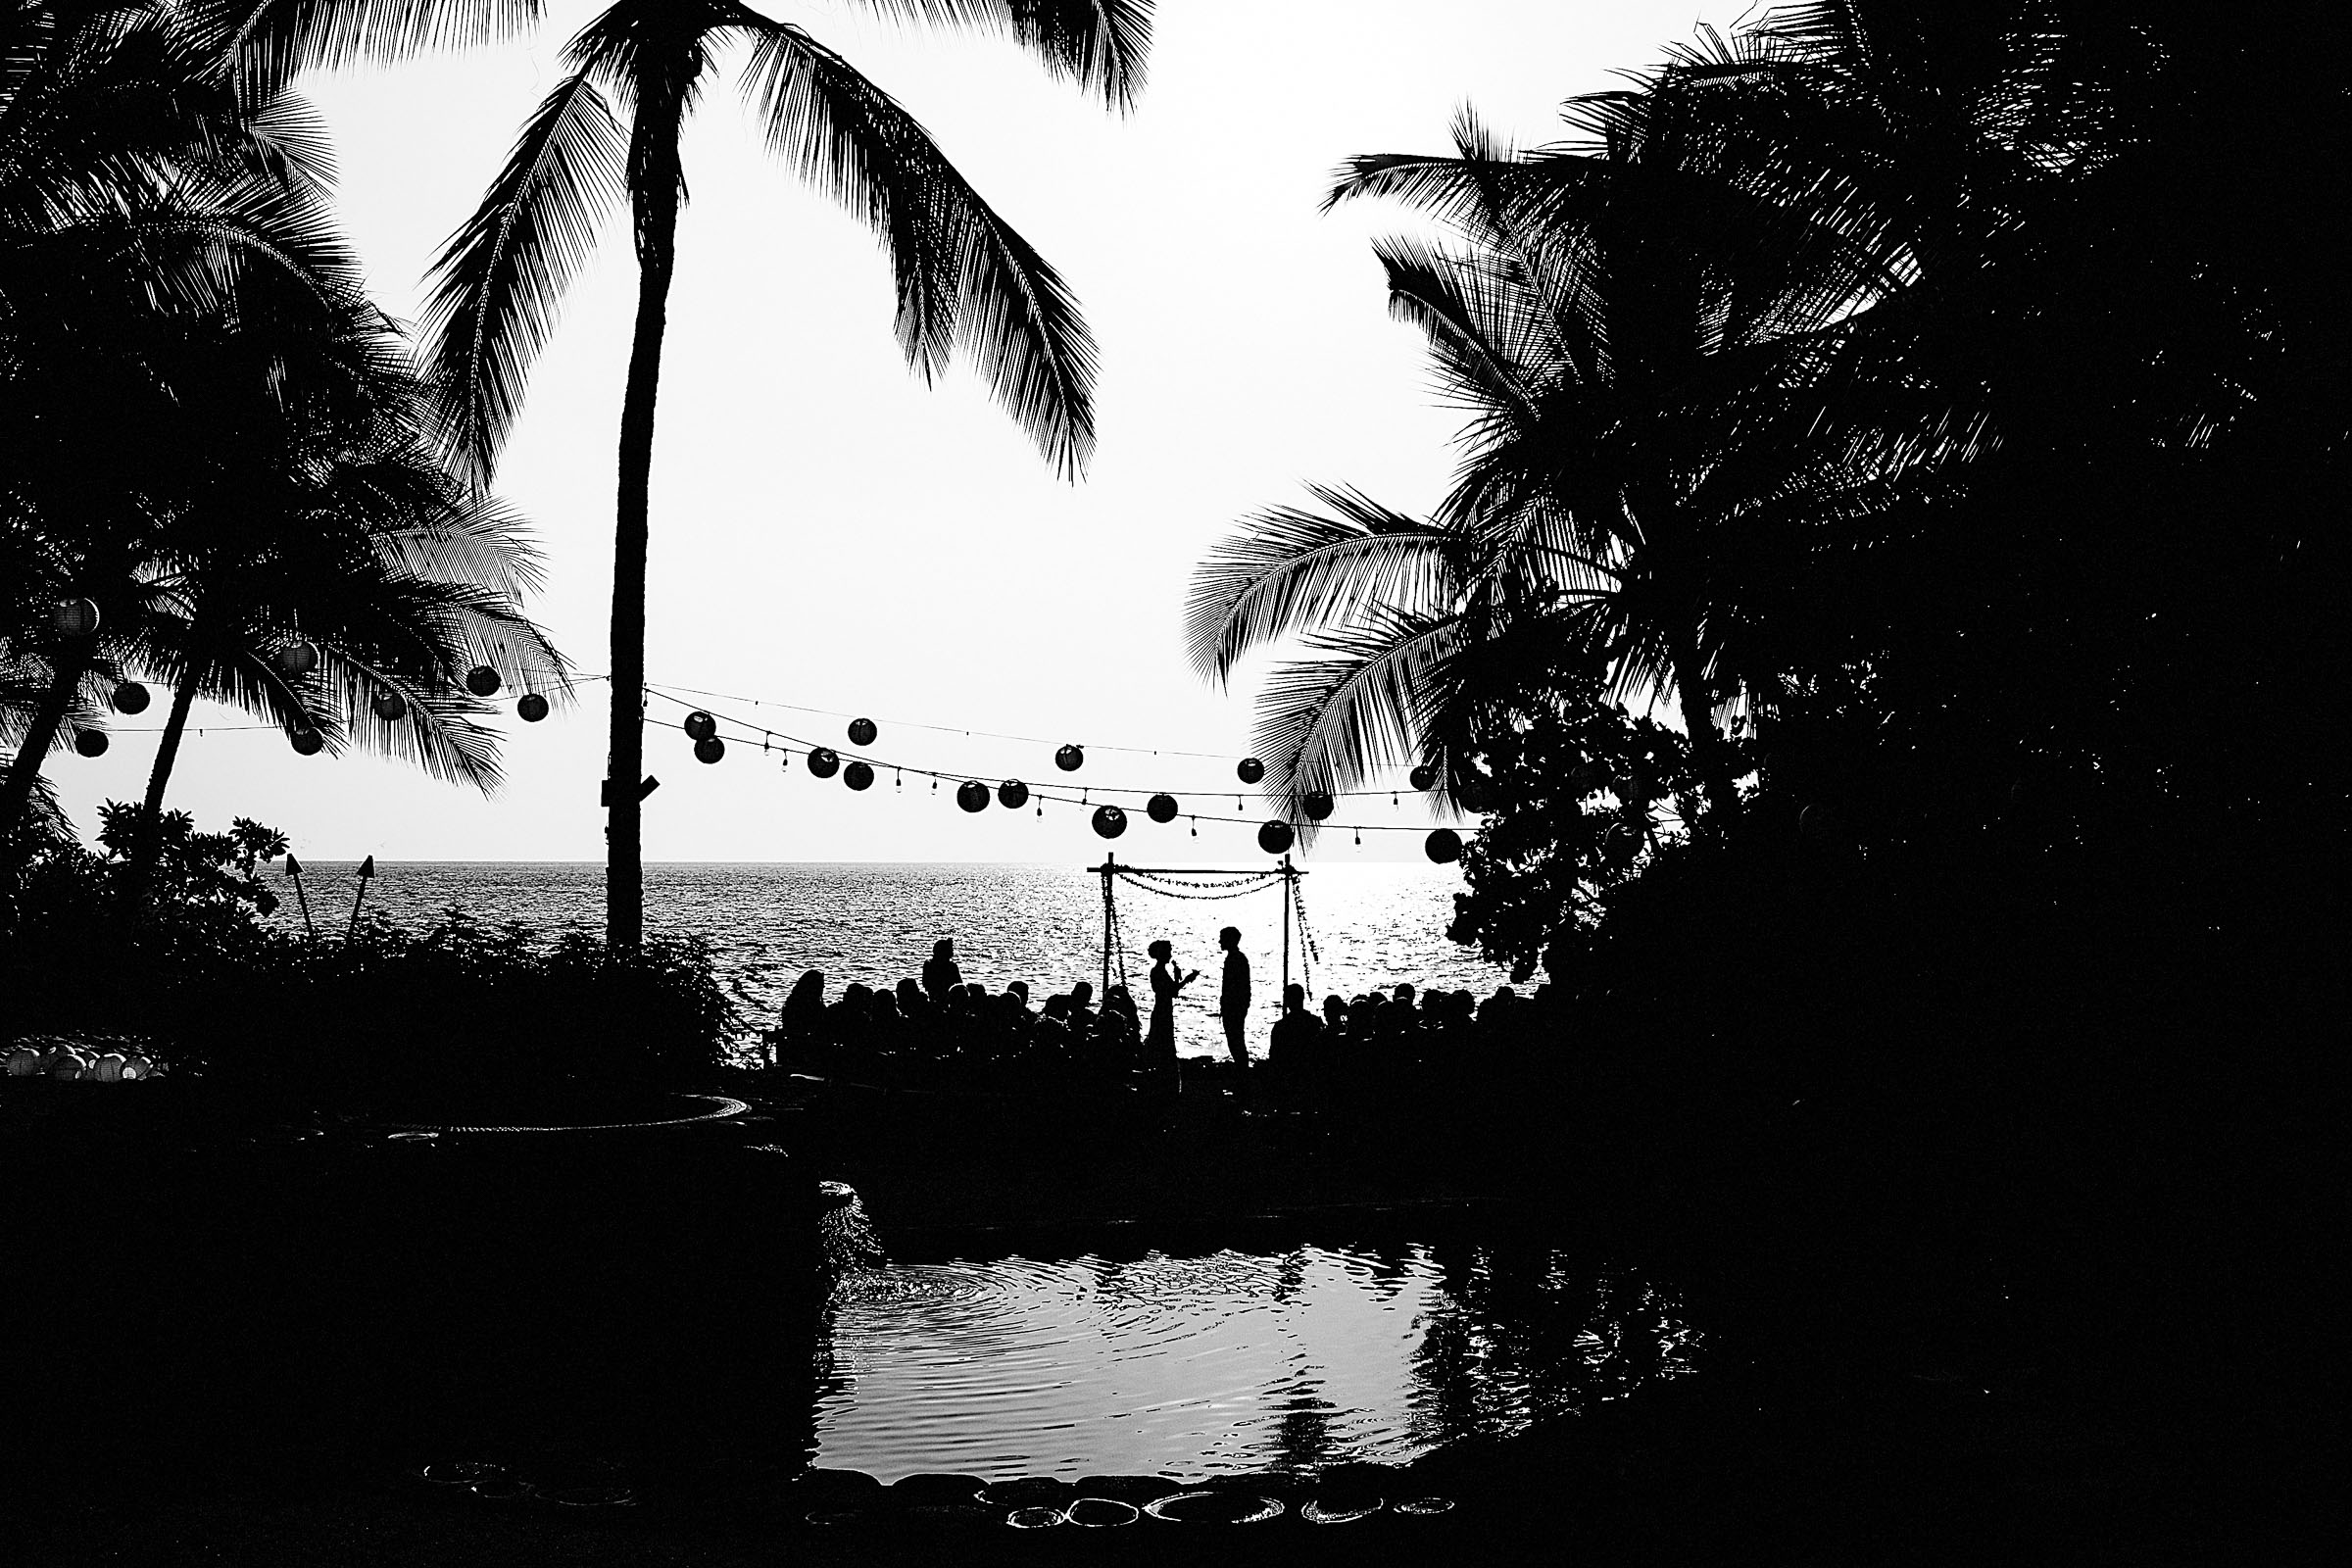 Black and white wide angle perspective of a Kailua Kona Wedding at the Kona Beach Bungalows on the Big Island of Hawaii